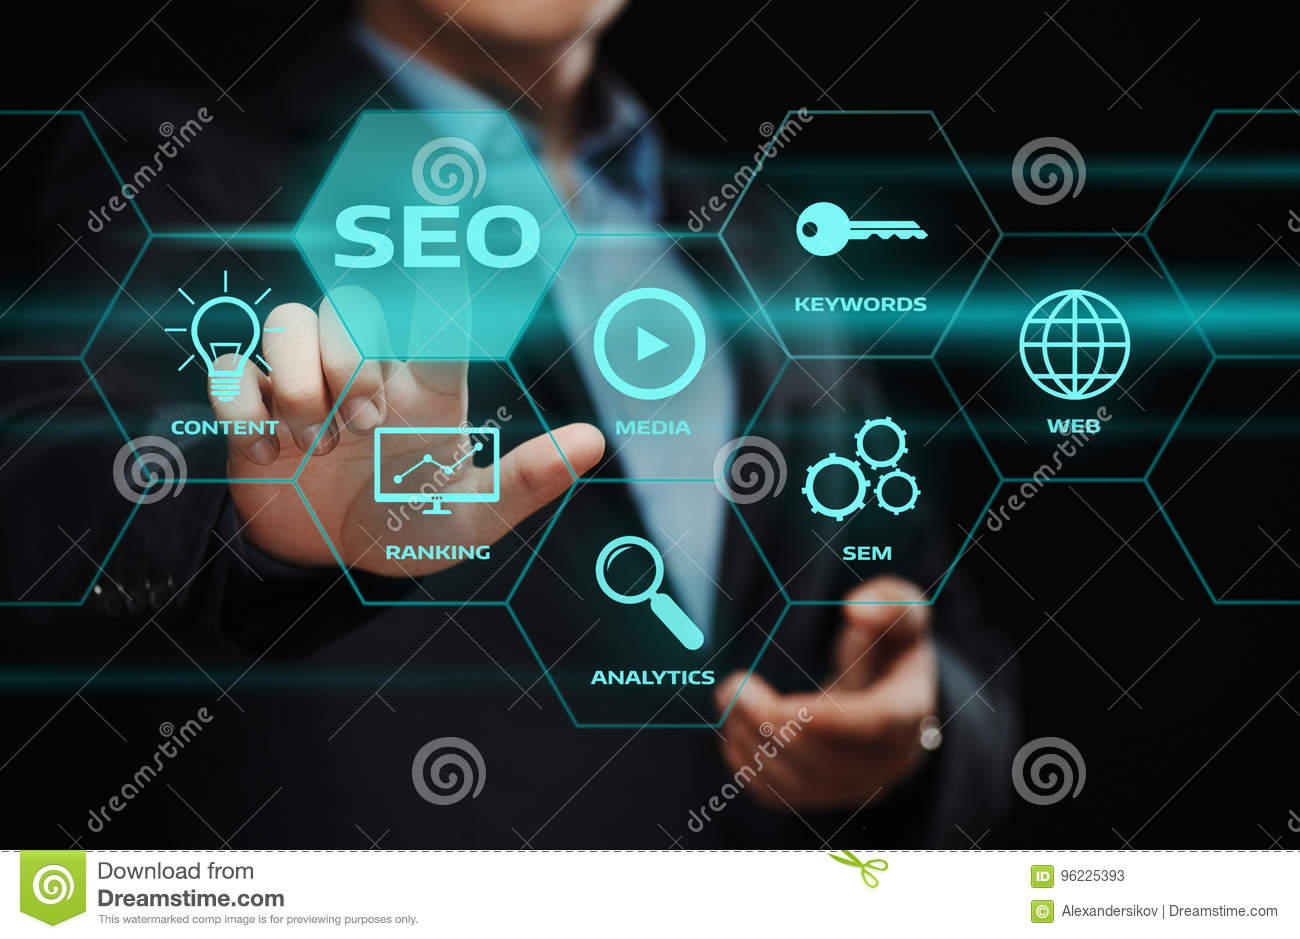 SEO SEM Search Engine Optimization Marketing Ranking Traffic Website Internet Business Technology Concept